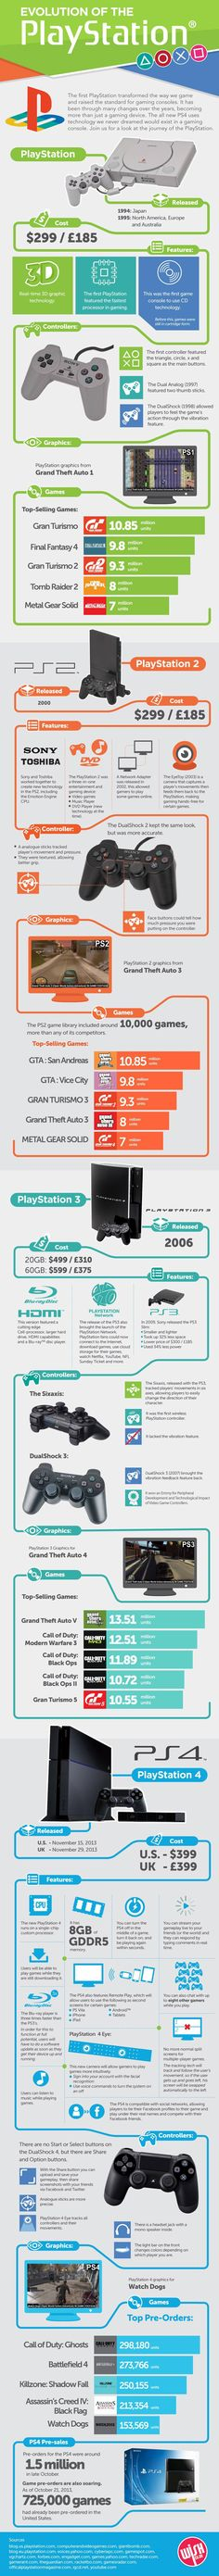 The PlayStation has come a long way since the release of the first generation console 20 years ago.